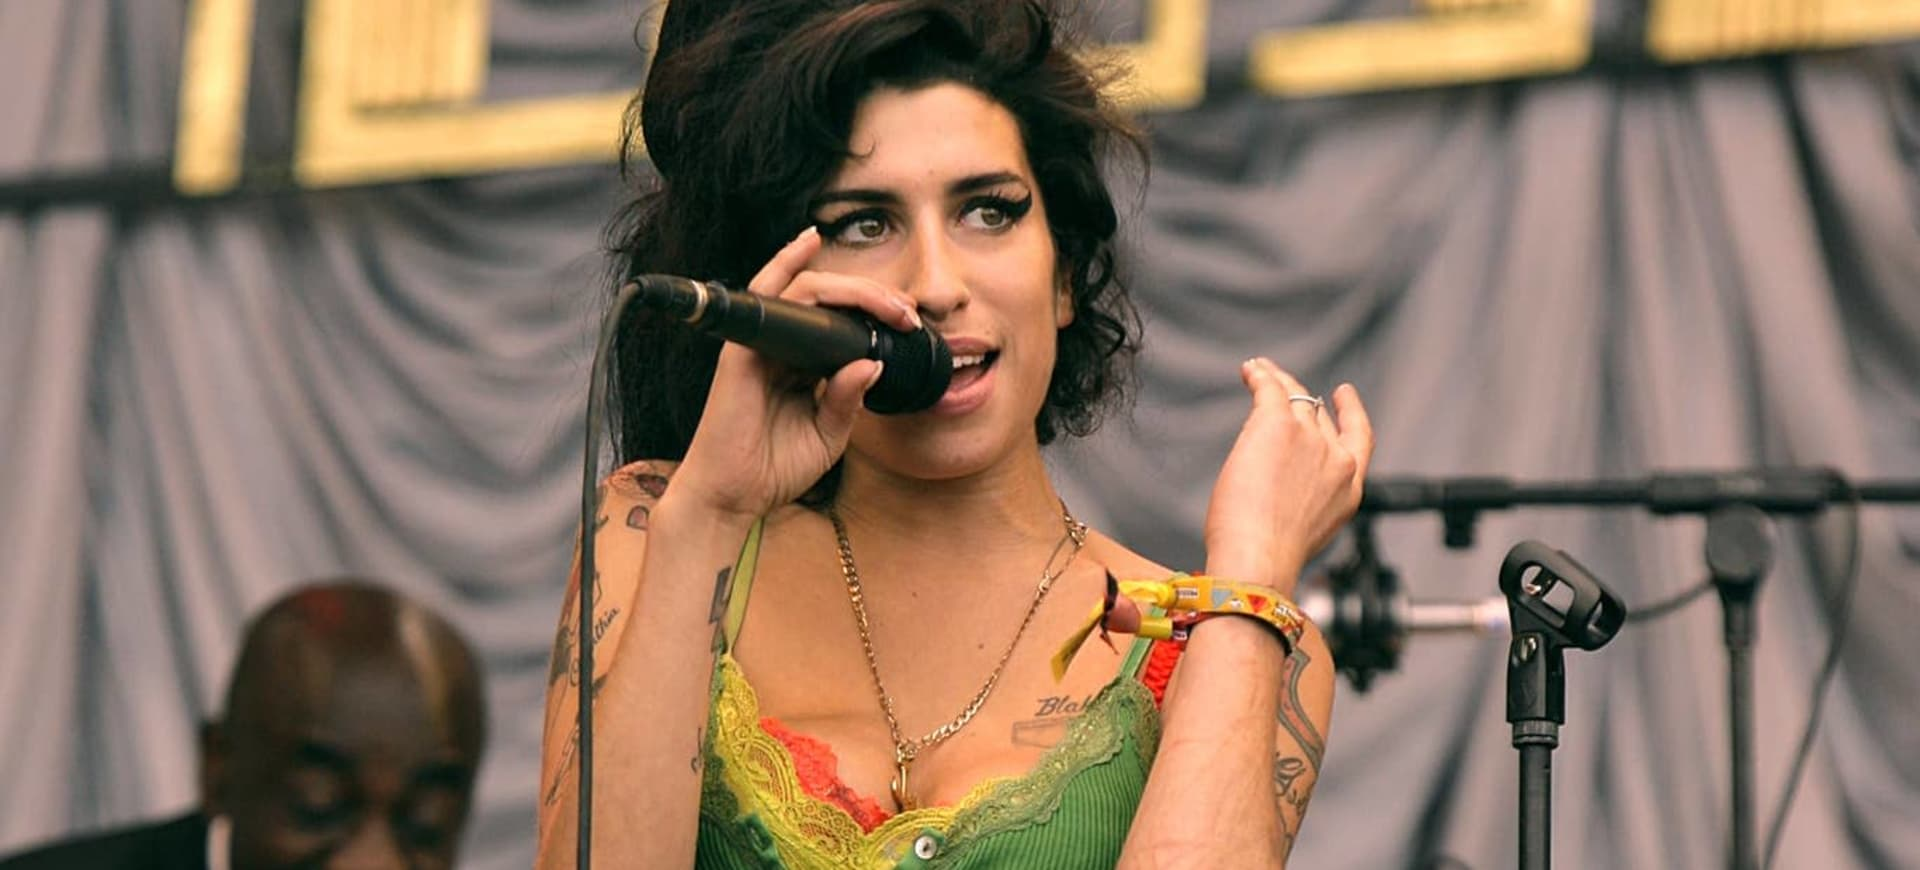 Amy Winehouse's family back Evening Standard's call to help women on the streets